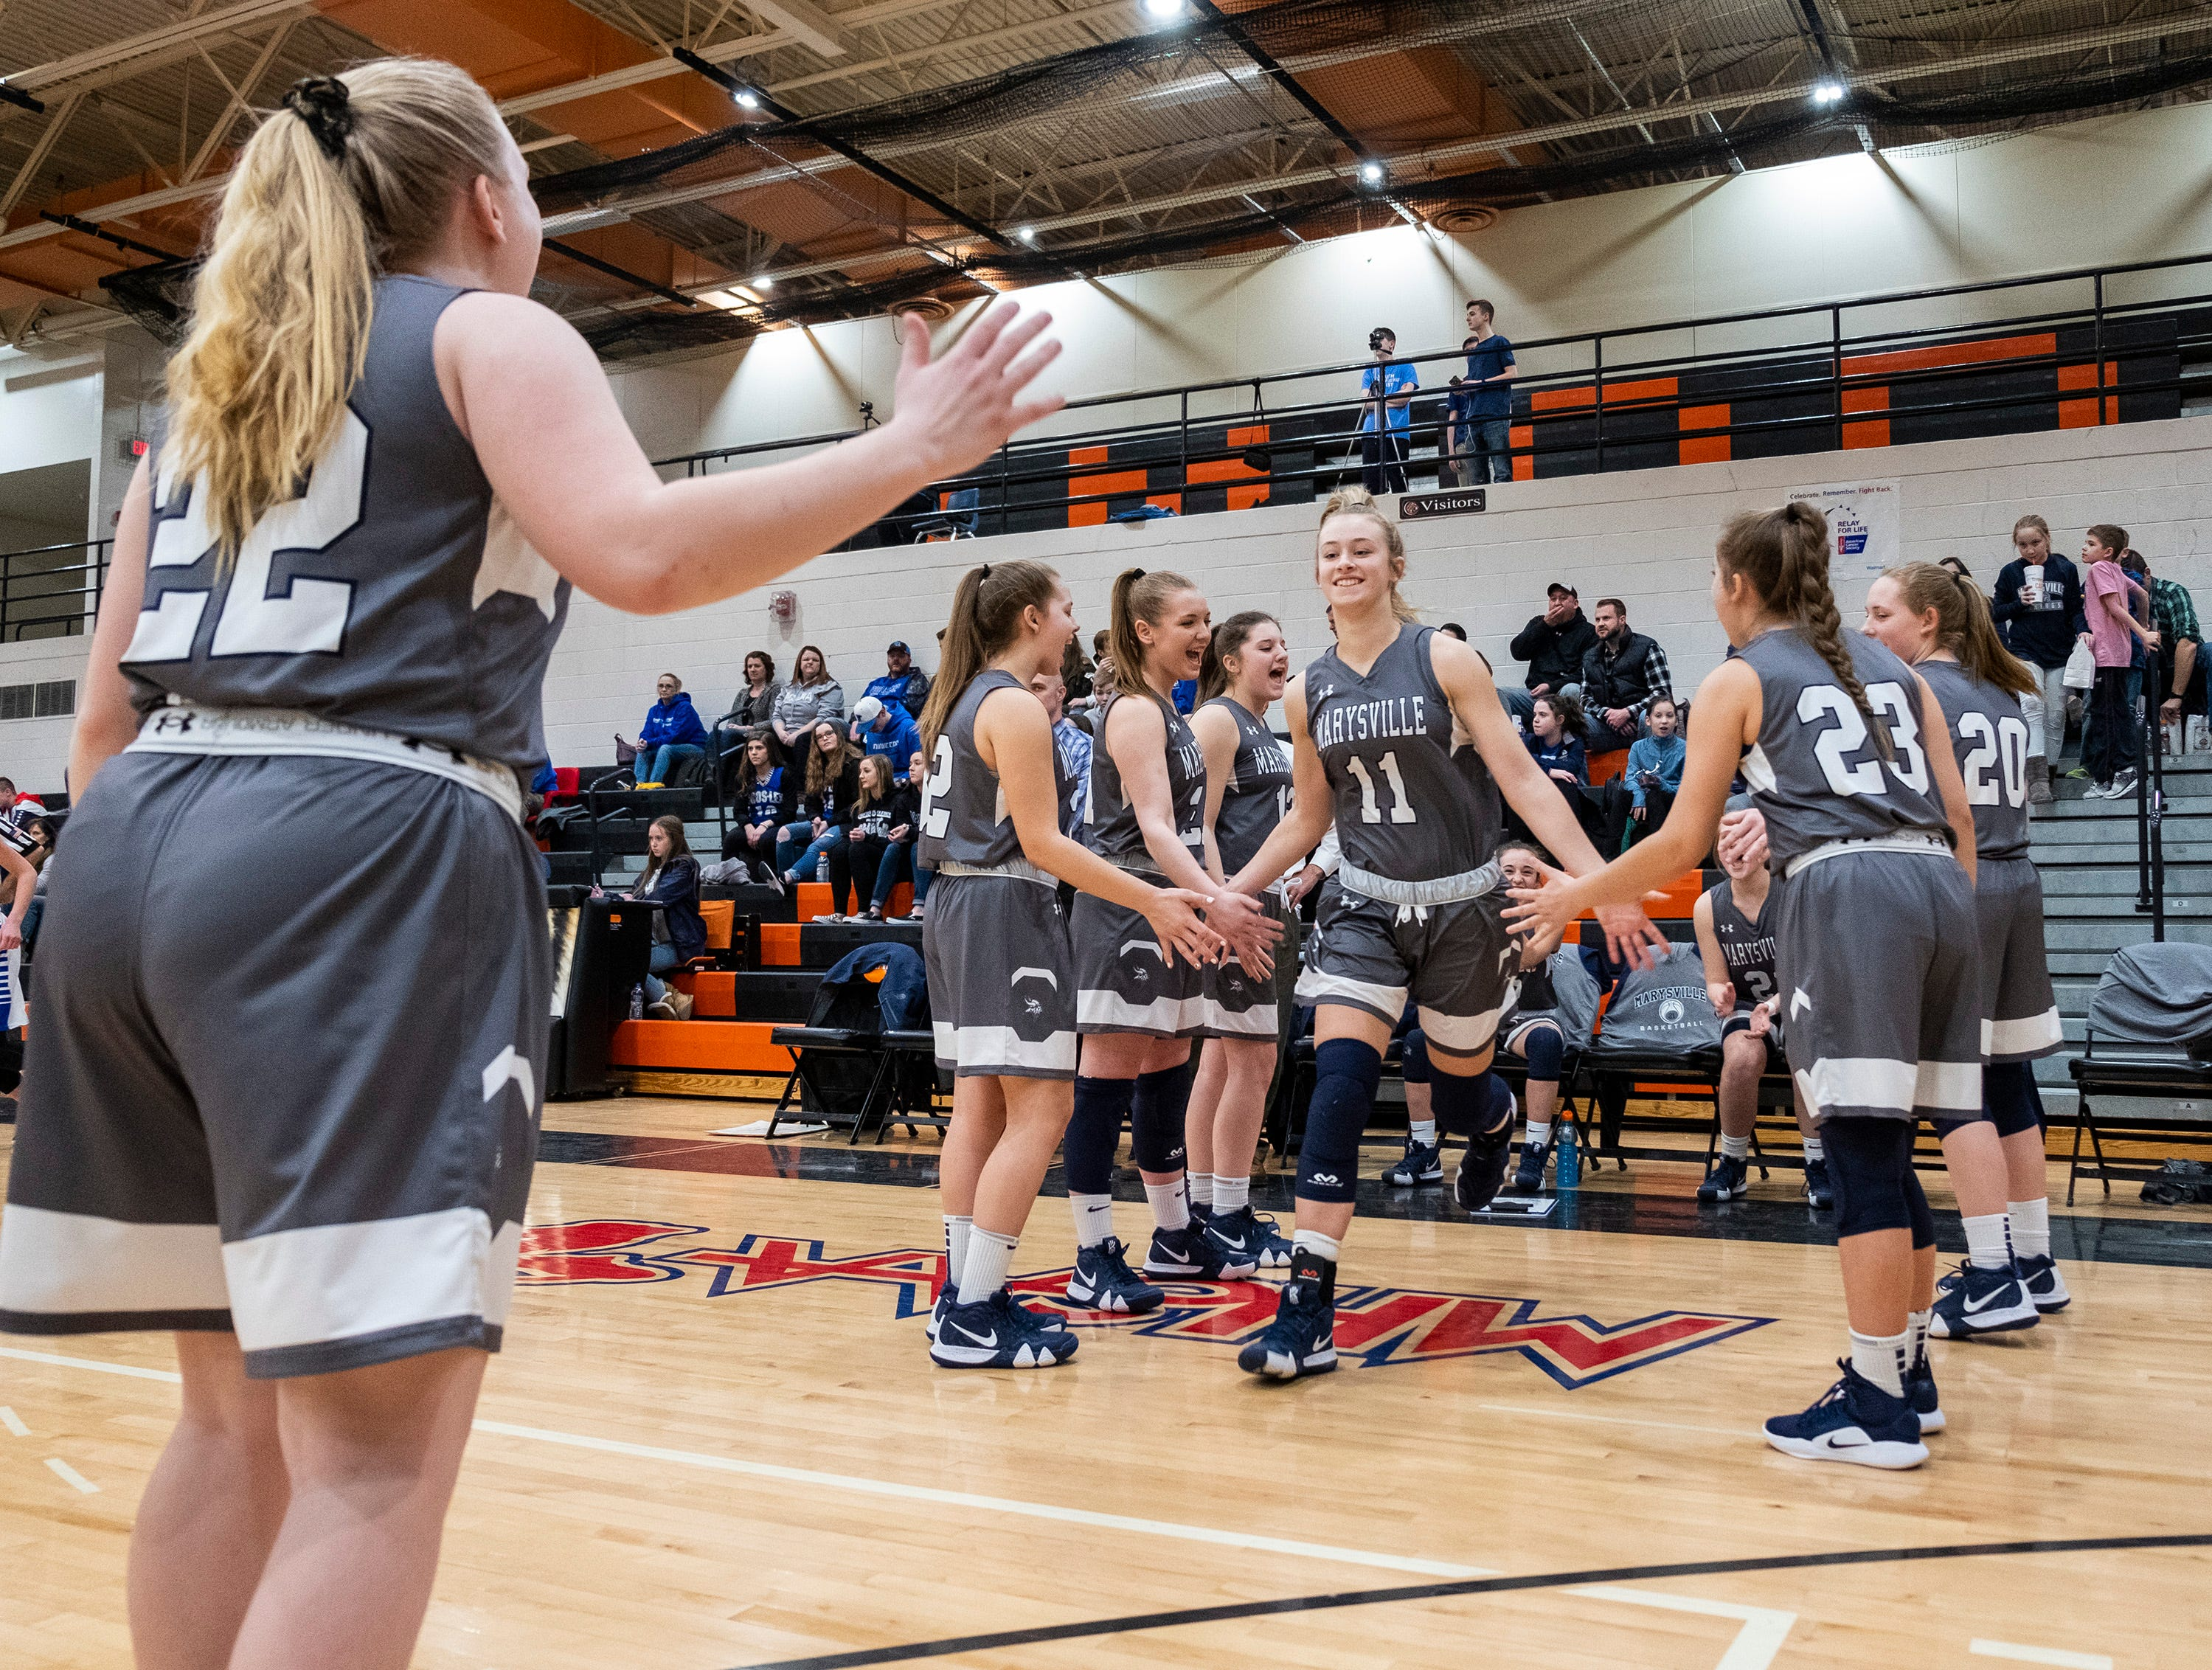 Marysville's Gabby Fogarty (11) high-fives her teammates as she takes the court before the MHSAA Girls Basketball Division 2 district finals against Croswell-Lexington High School Friday, March 8, 2019 at Armada High School.